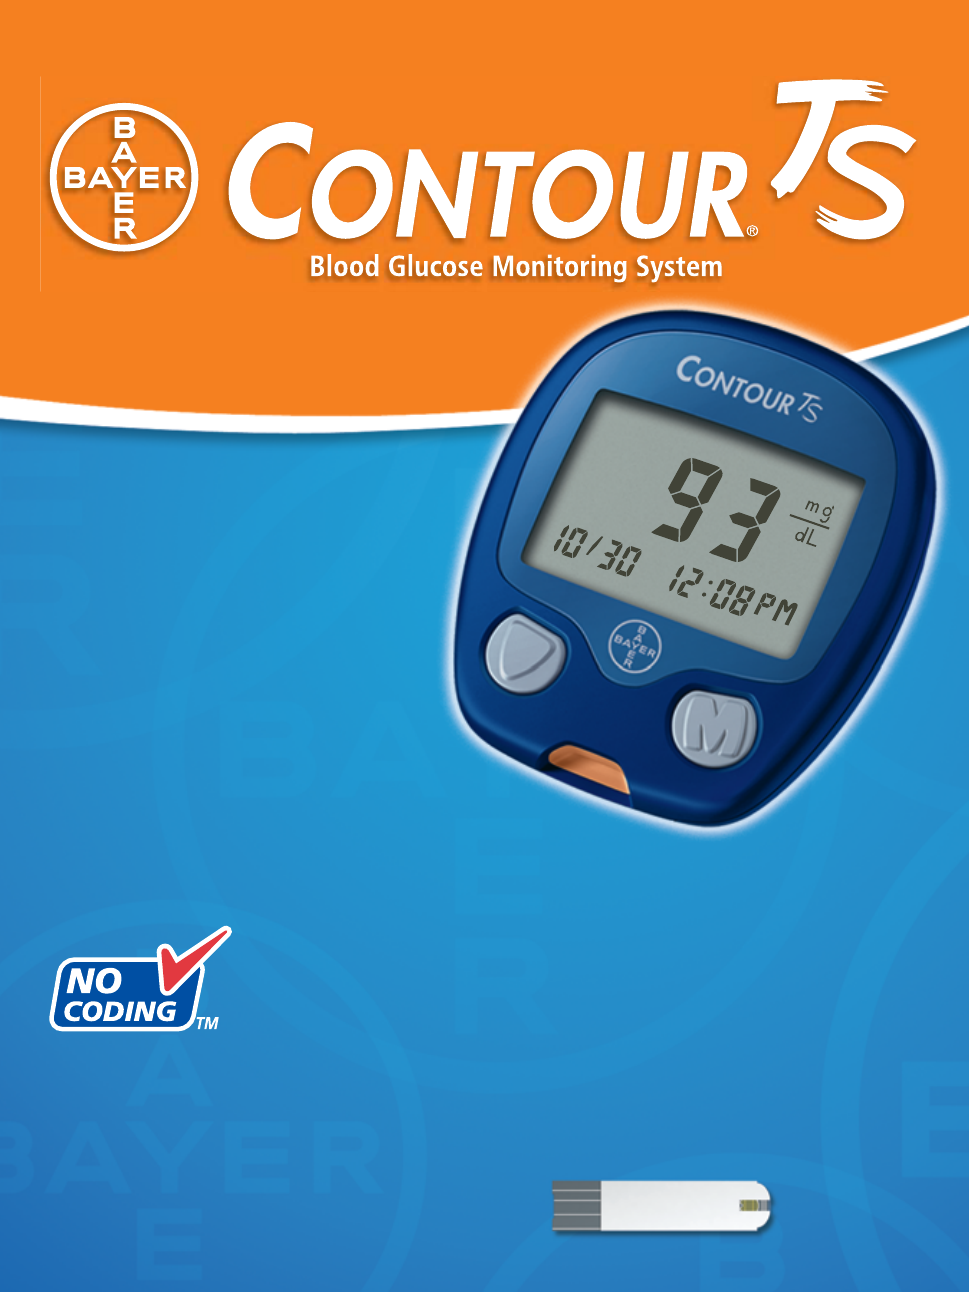 bayer healthcare contour ts user s manual free pdf download 35 pages rh manualagent com bayer contour ts user guide Bayer Contour Blood Glucose Monitoring System